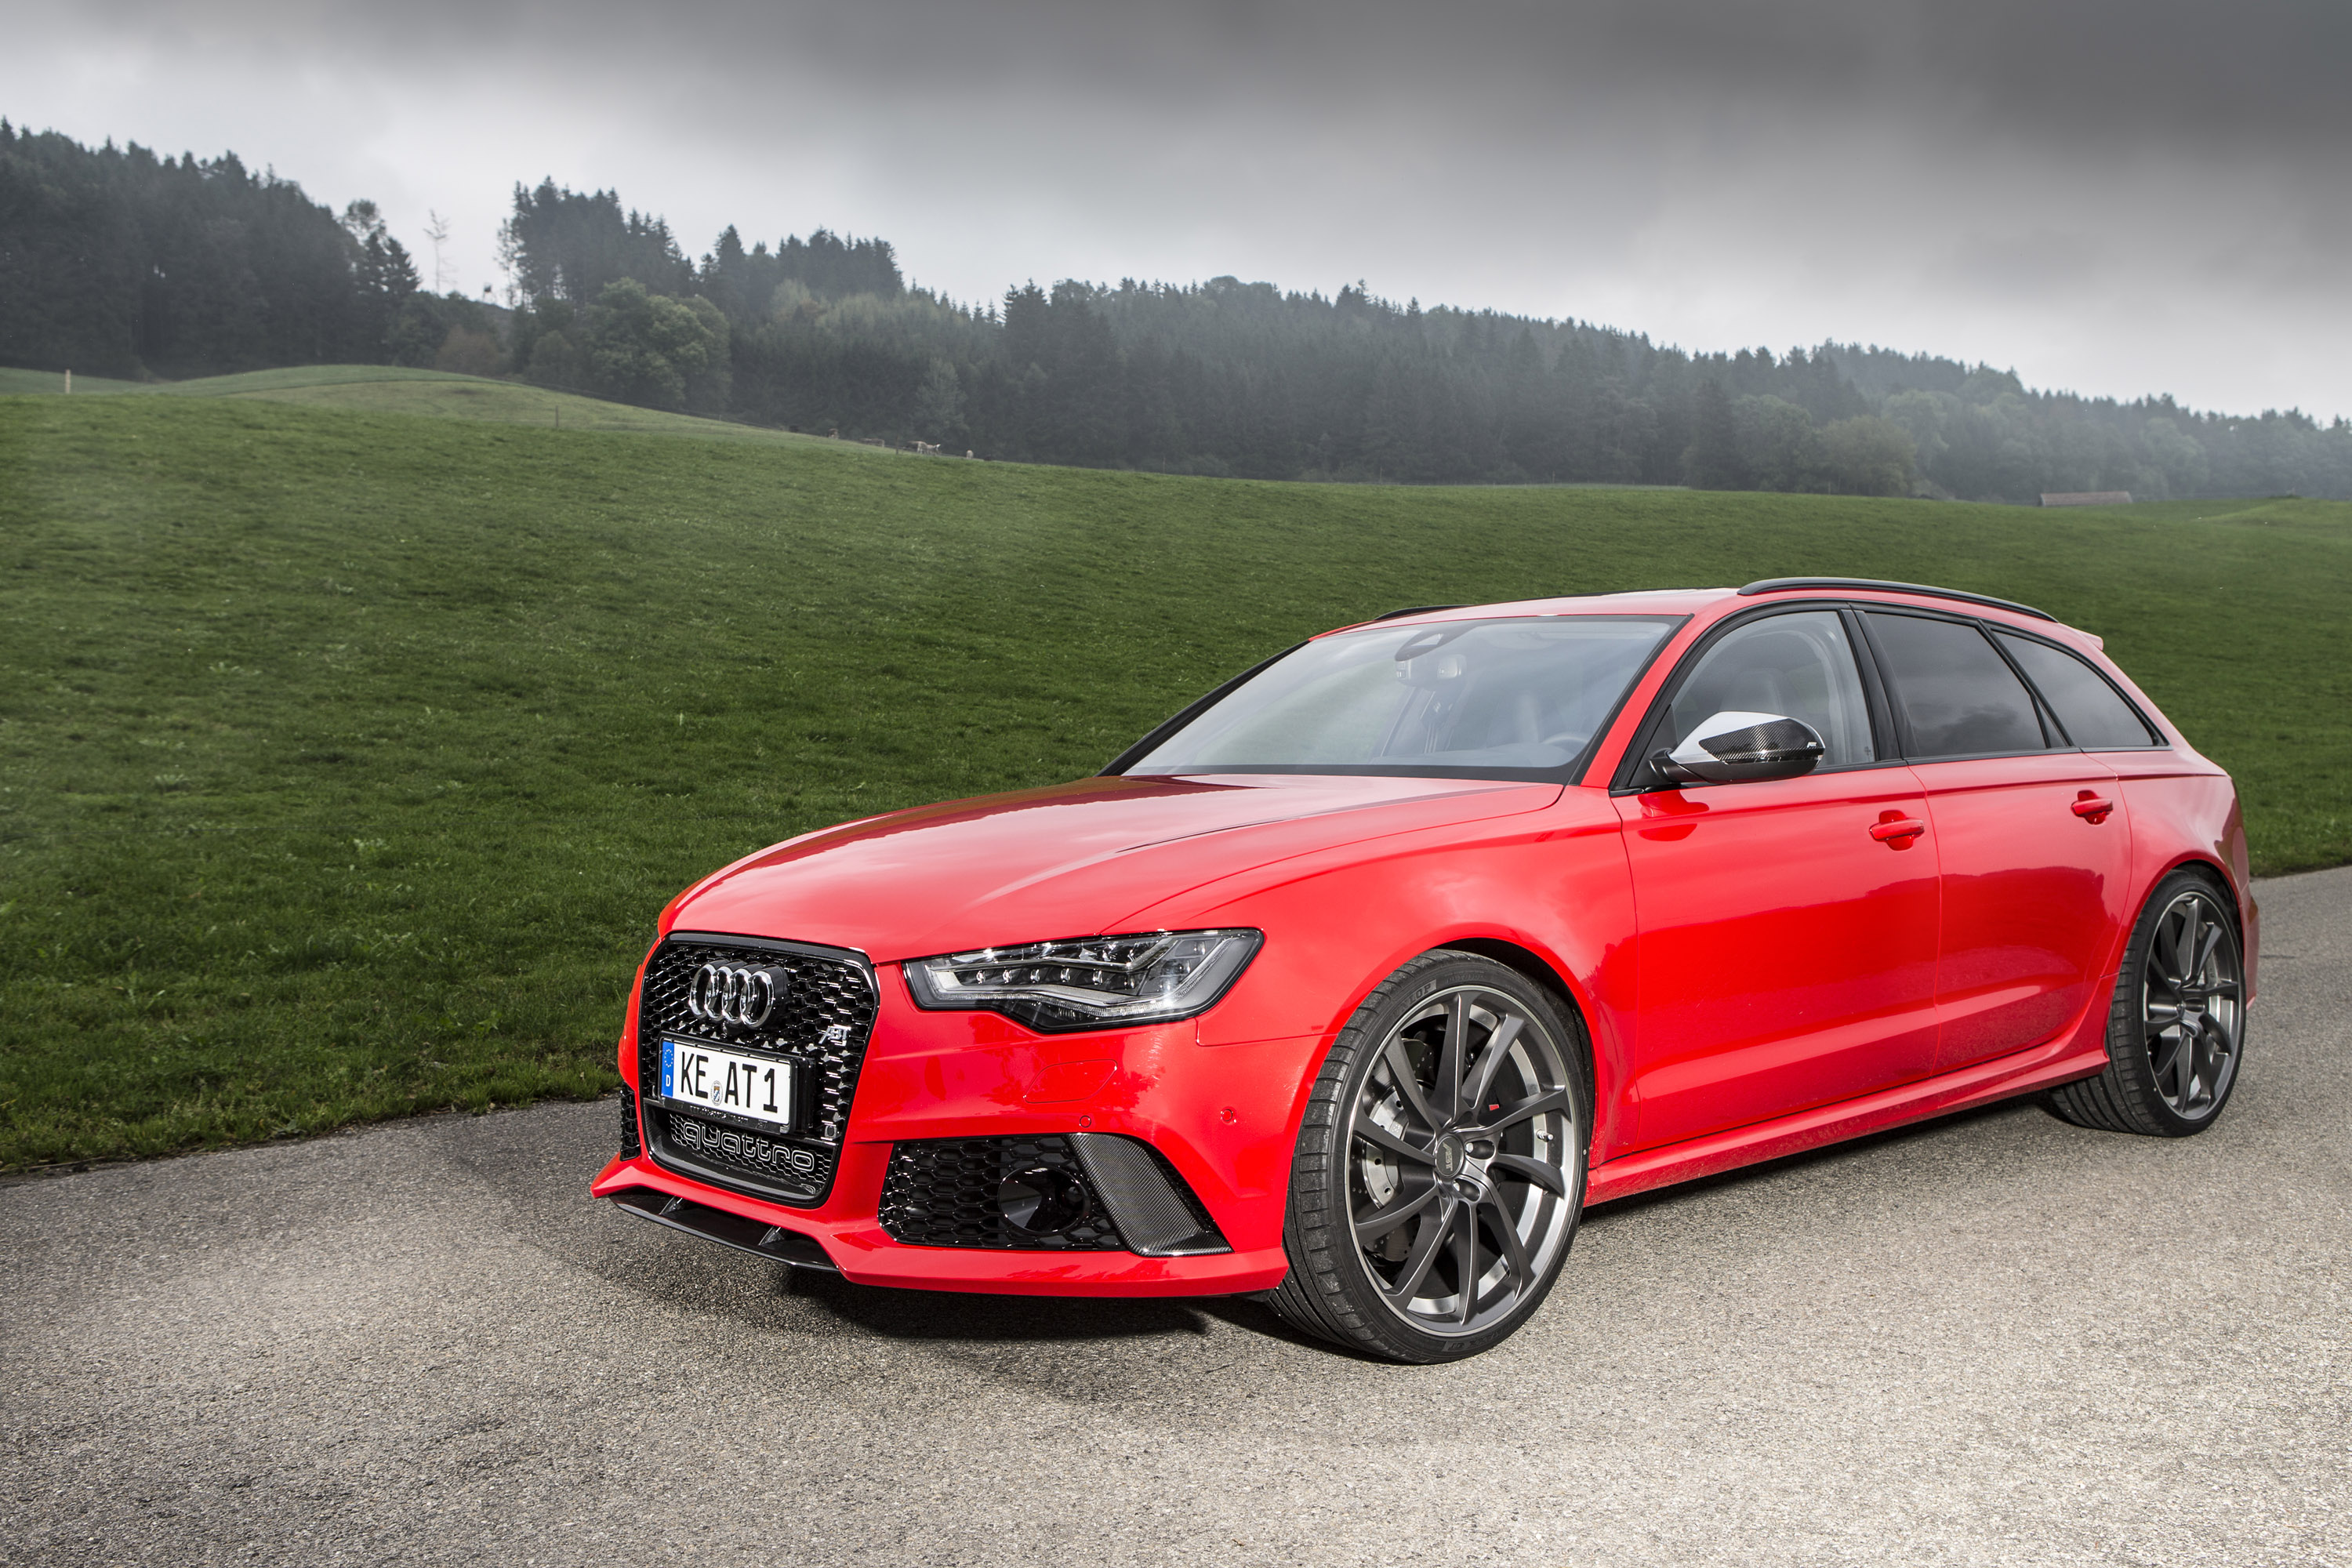 2013 audi rs6 by abt sportsline review top speed. Black Bedroom Furniture Sets. Home Design Ideas